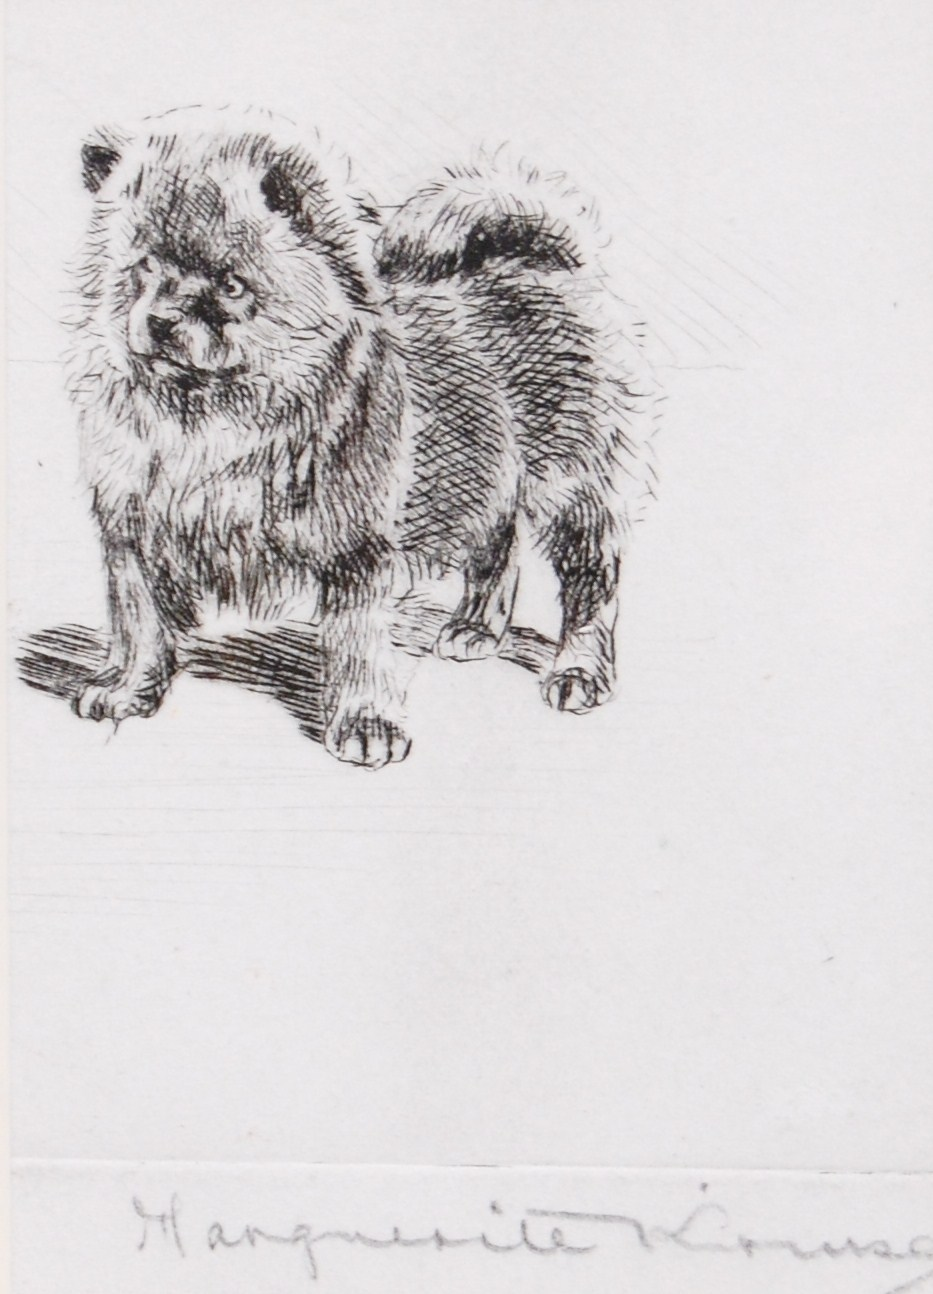 Click to see full size: Chow Chow etching by Marguerite Kirmse (1885-1955)- Chow Chow etching by Marguerite Kirmse (1885-1955)